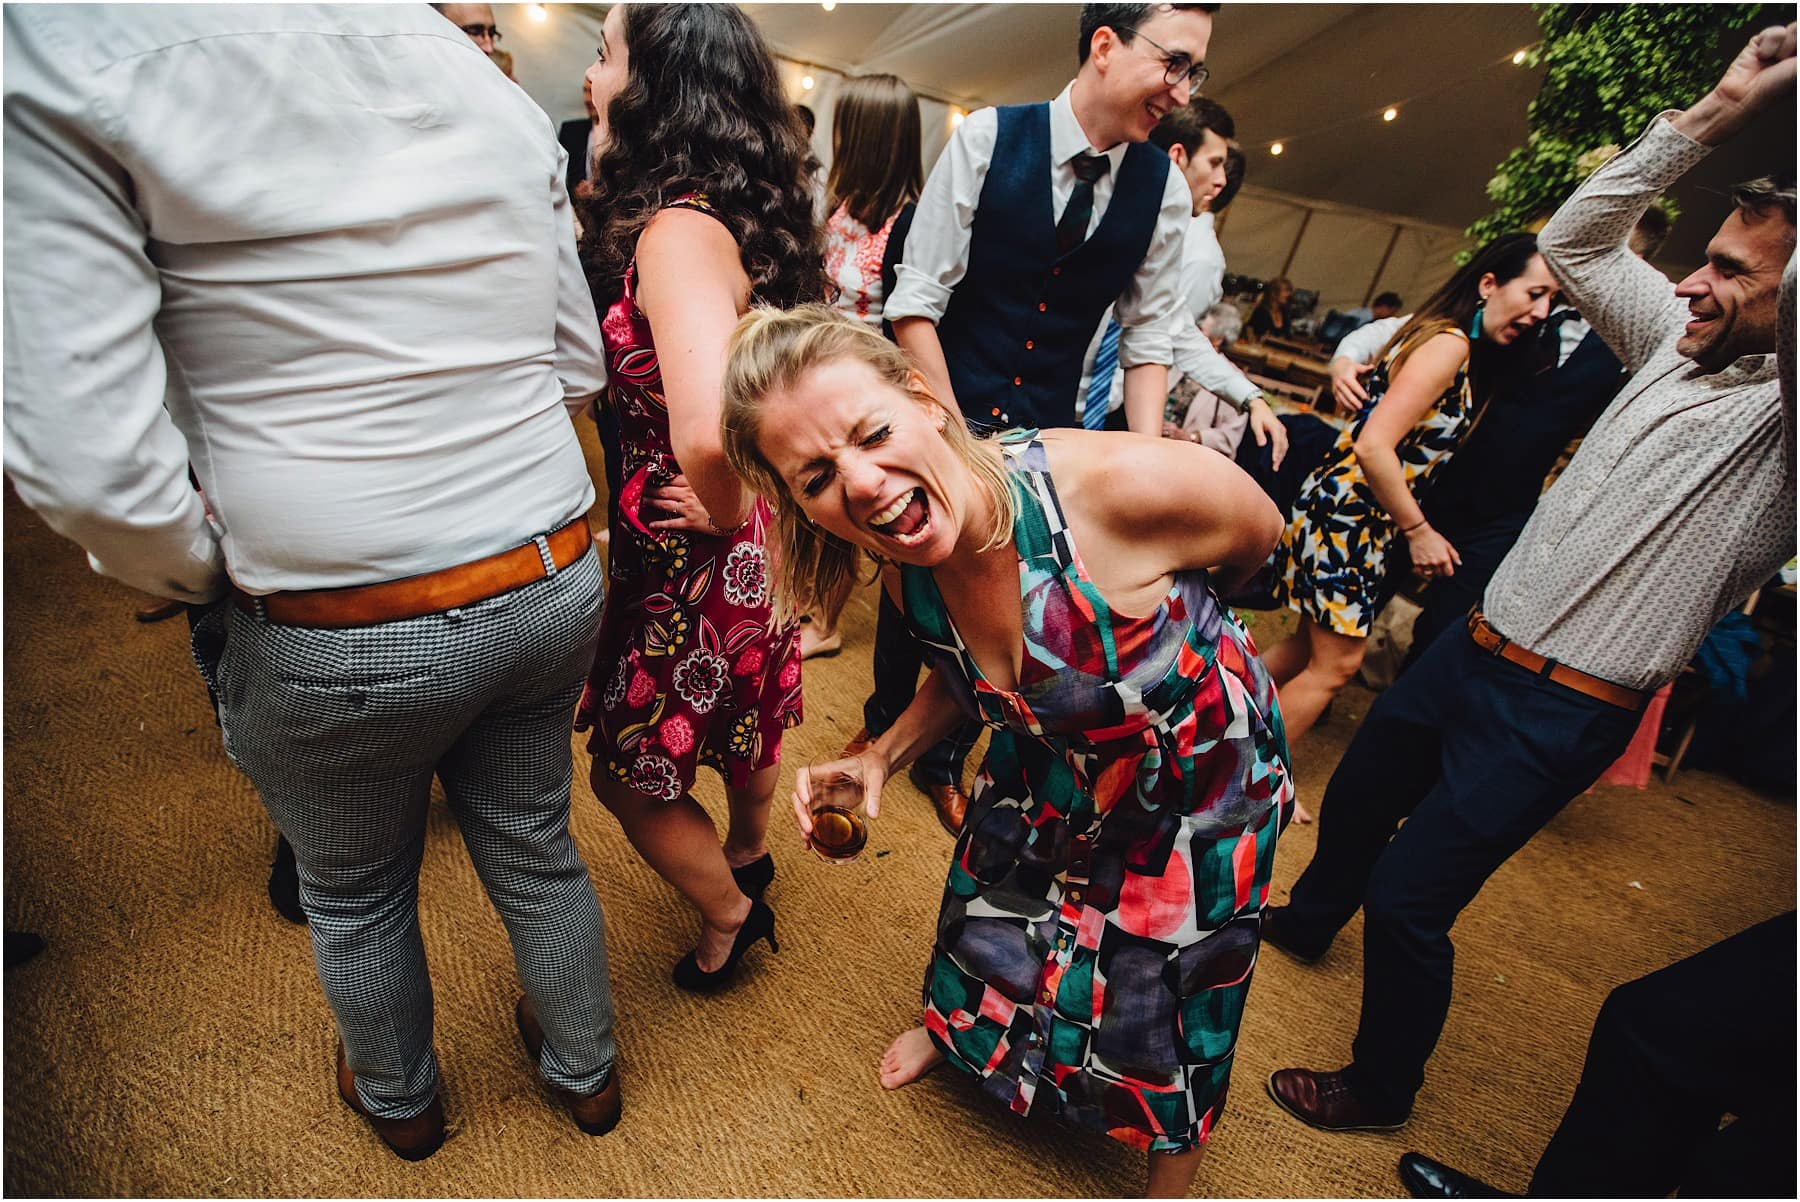 wedding guest bent over on the dance floor